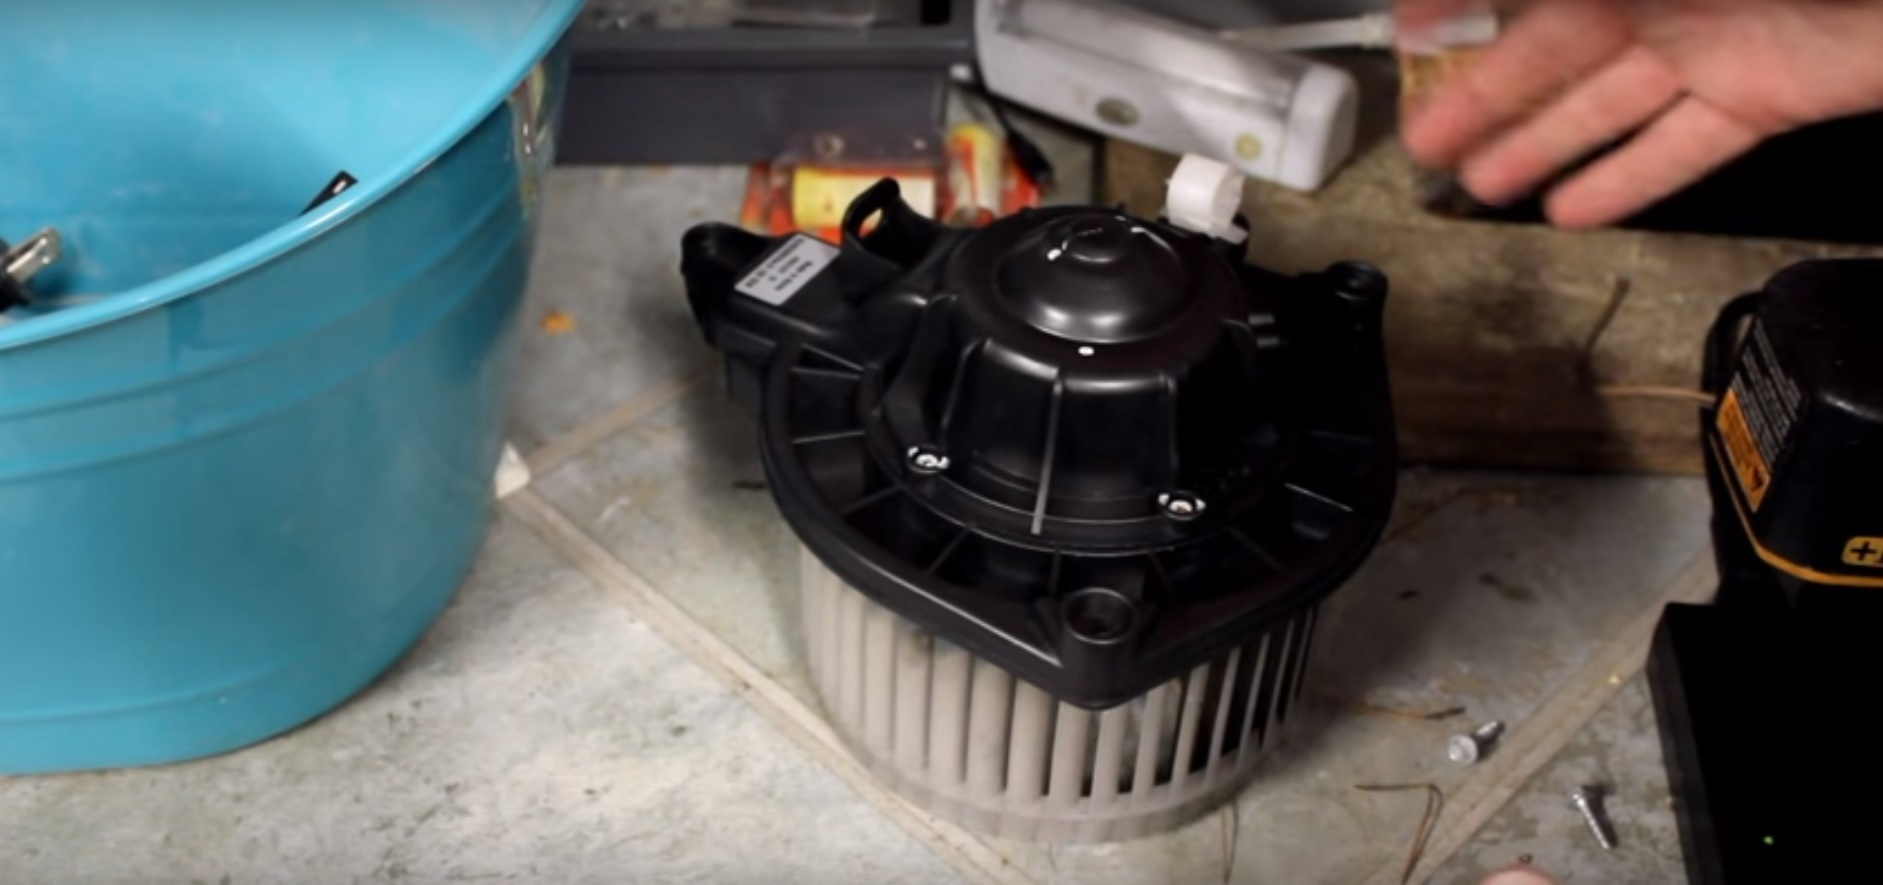 Remove the blower motor and clean out any foreign material that might be inside it